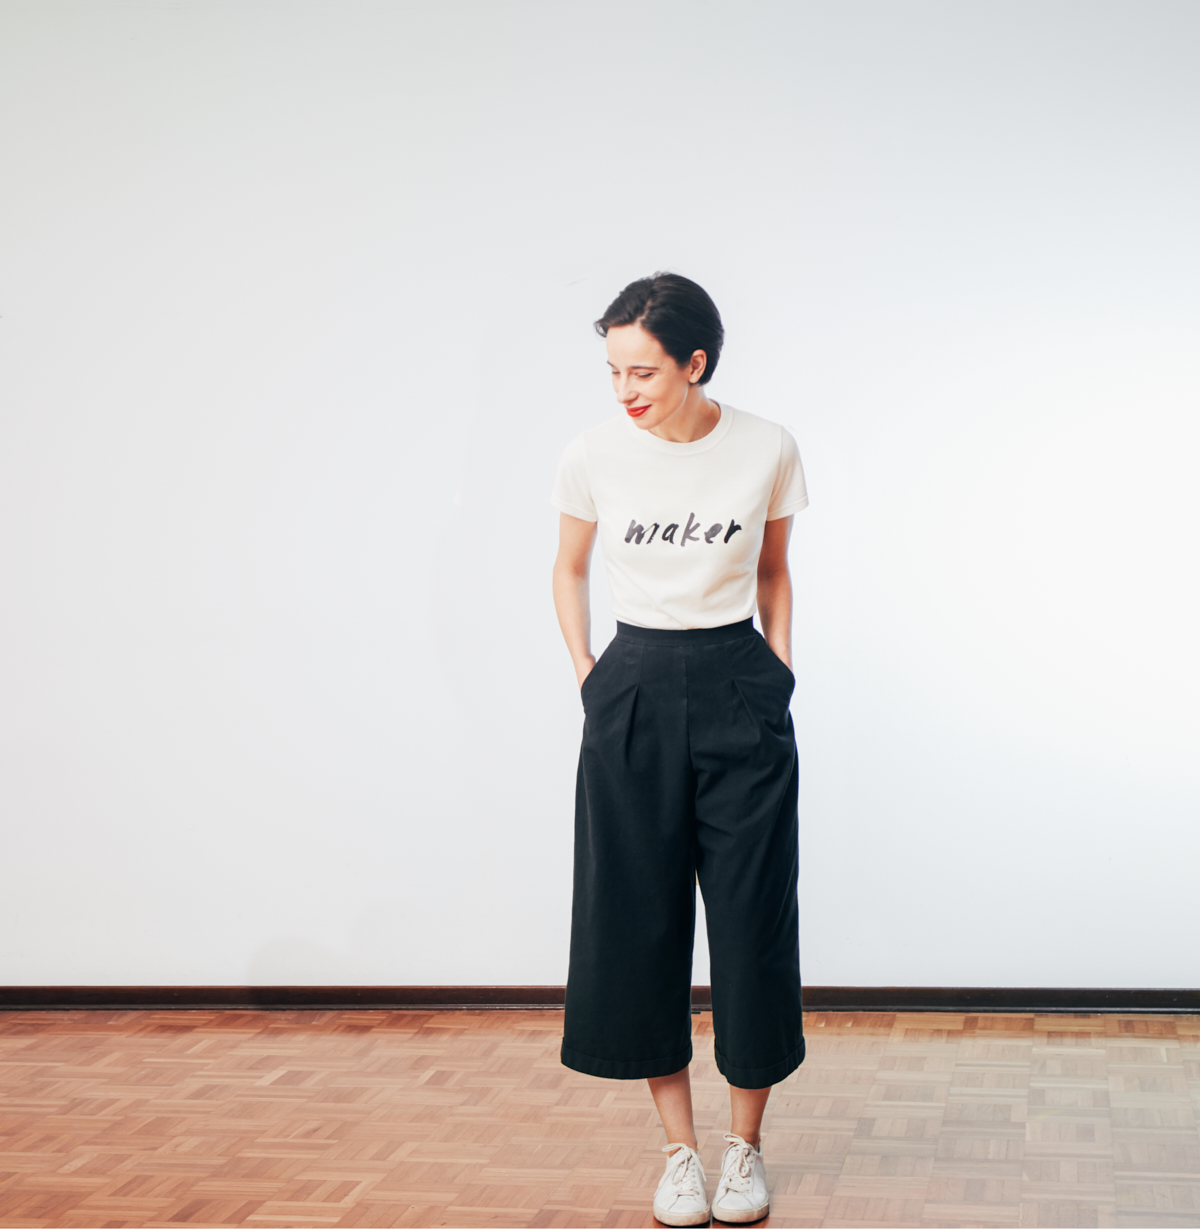 :::: t-shirt in recycled Lacoste pique and tweaked Galleria culottes in vintage plain weave cotton fabric :: t-shirt in tessuto Lacoste riciclato  e Galleria culottes in tela vintage di cotone::::